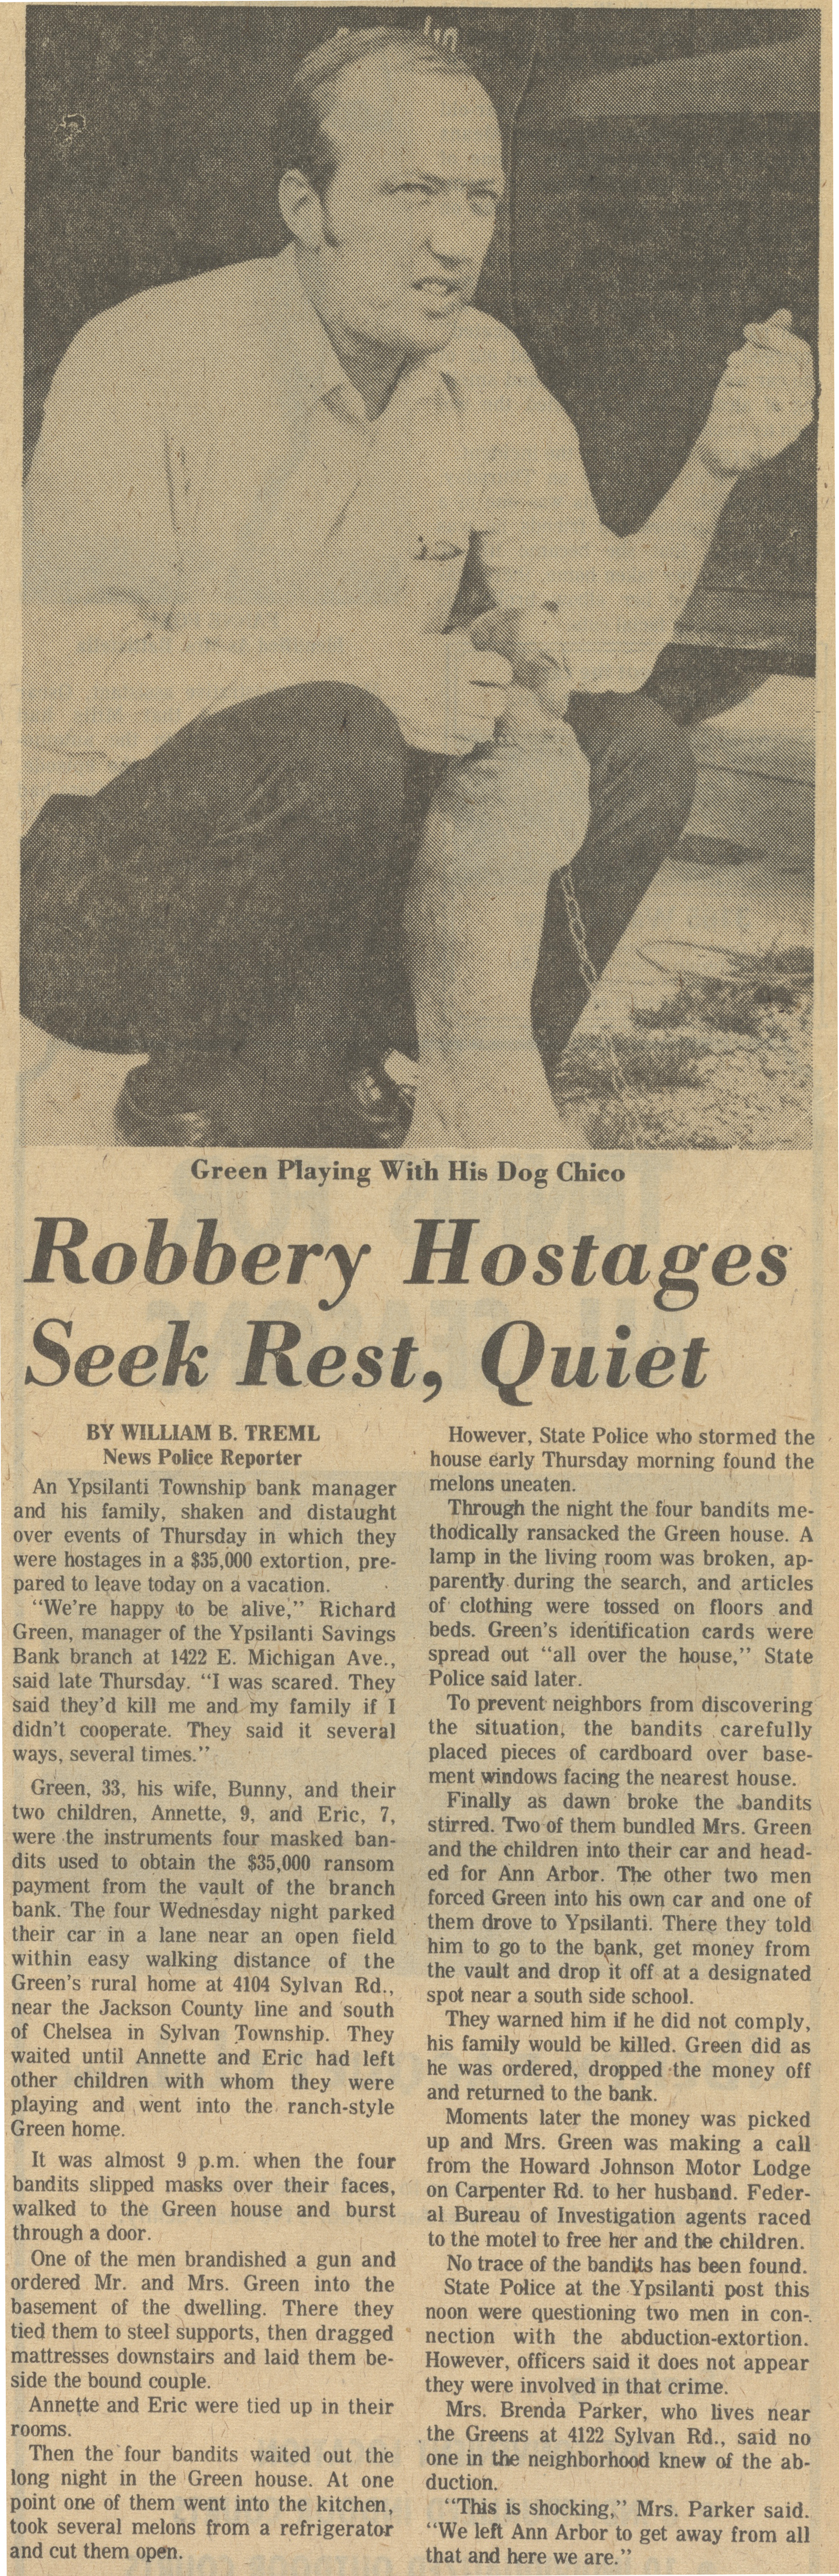 Robbery Hostages Seek Rest, Quiet image